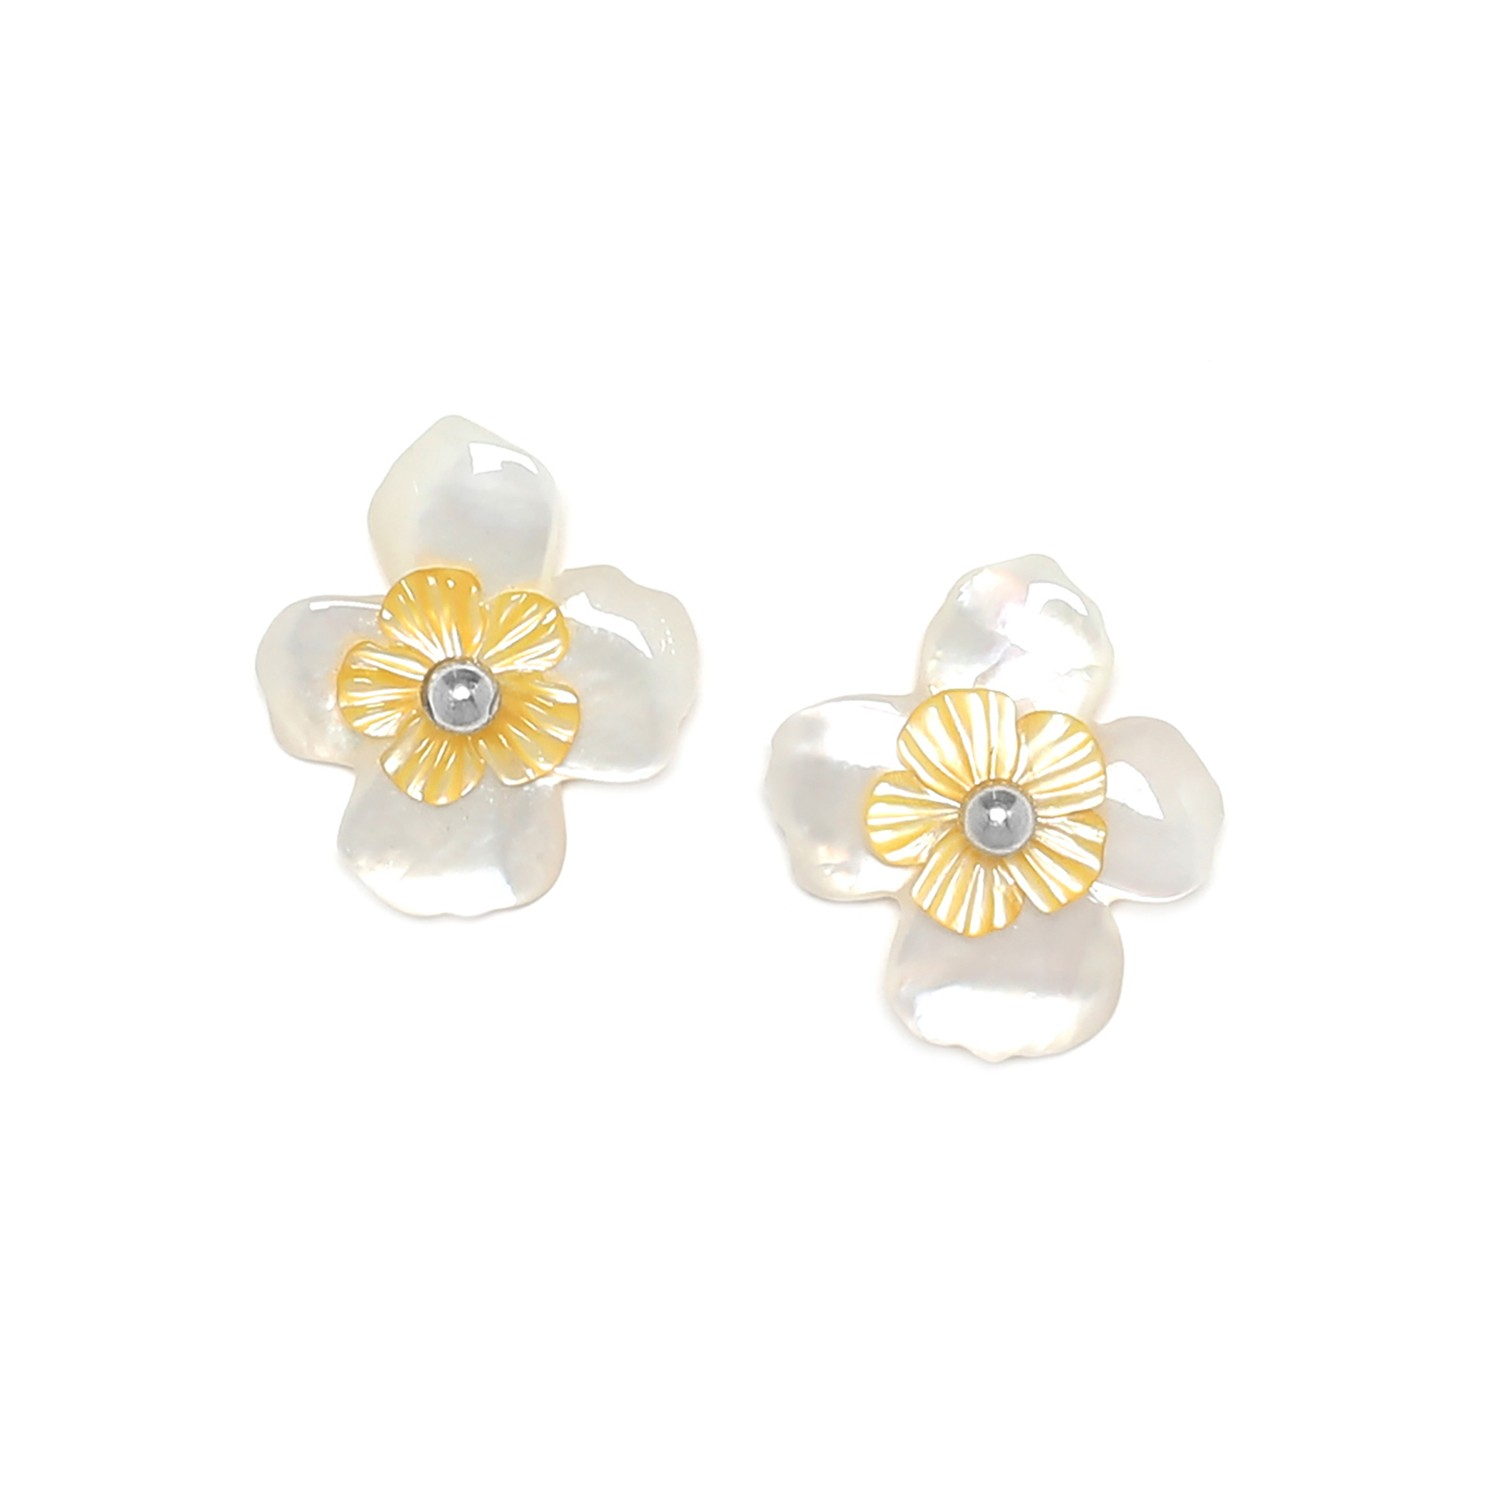 FLEURS DE NACRE white MoP post earrings